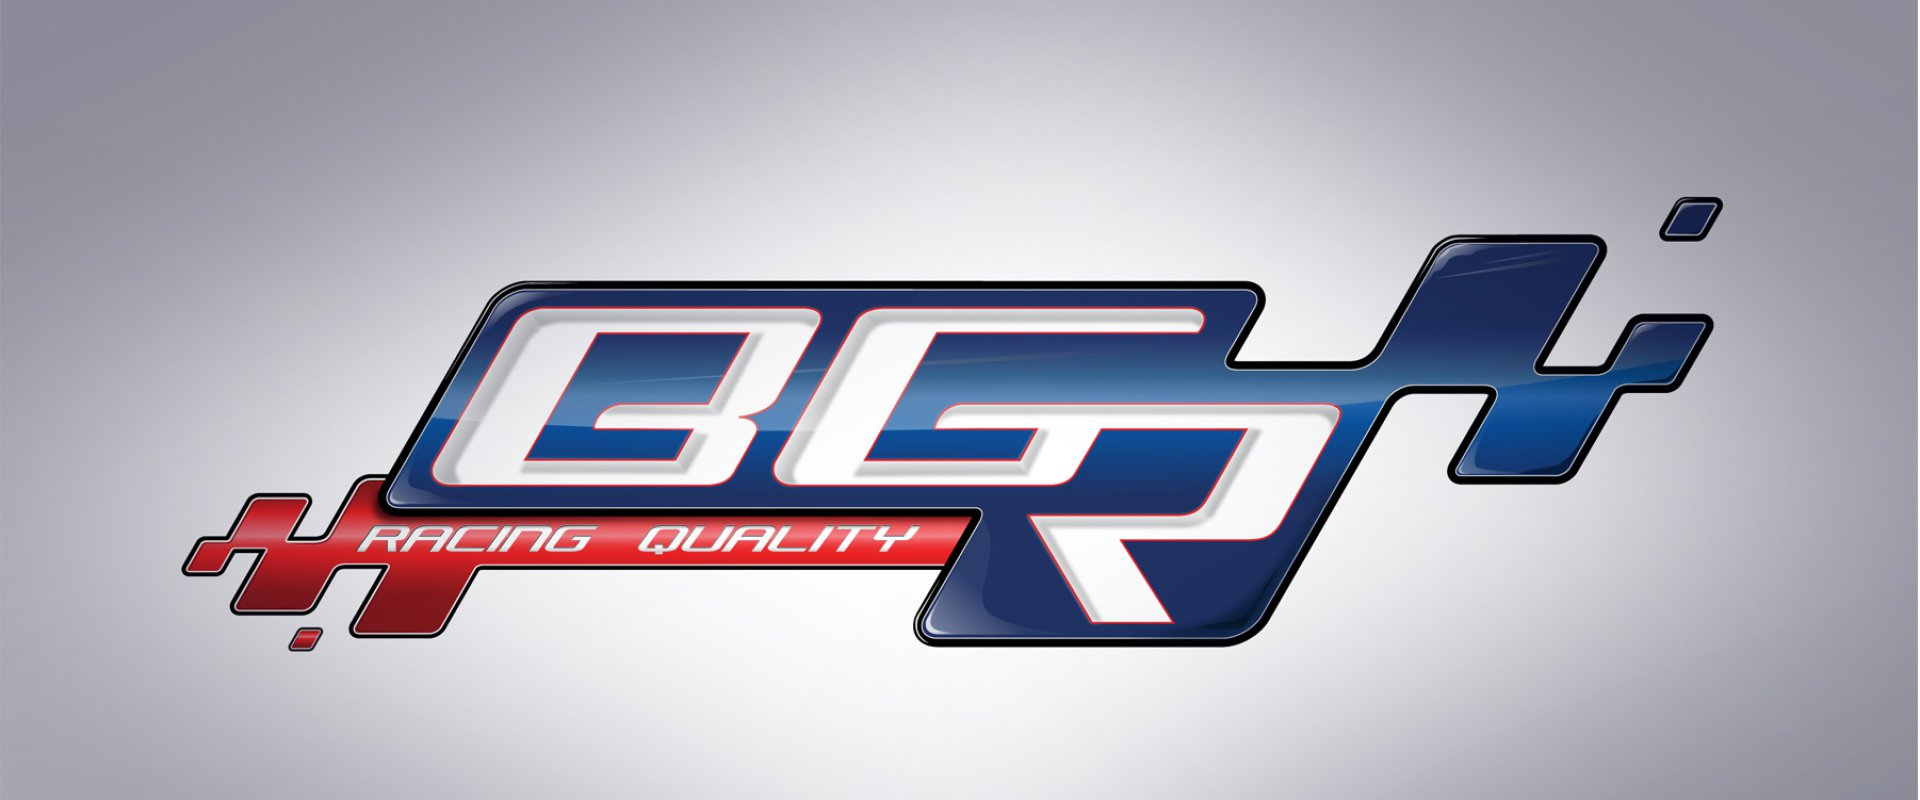 BGR Racing Quality #1